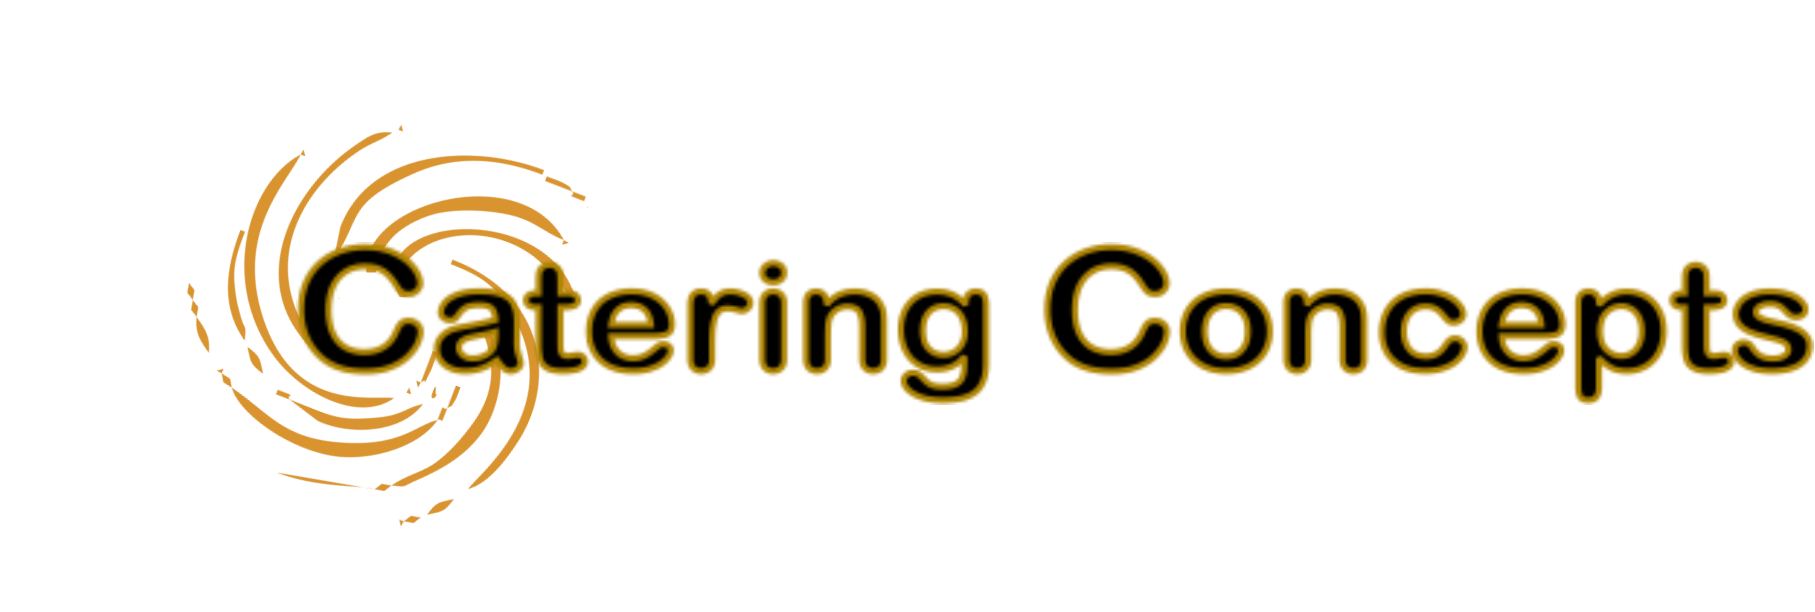 Catering Concepts NC